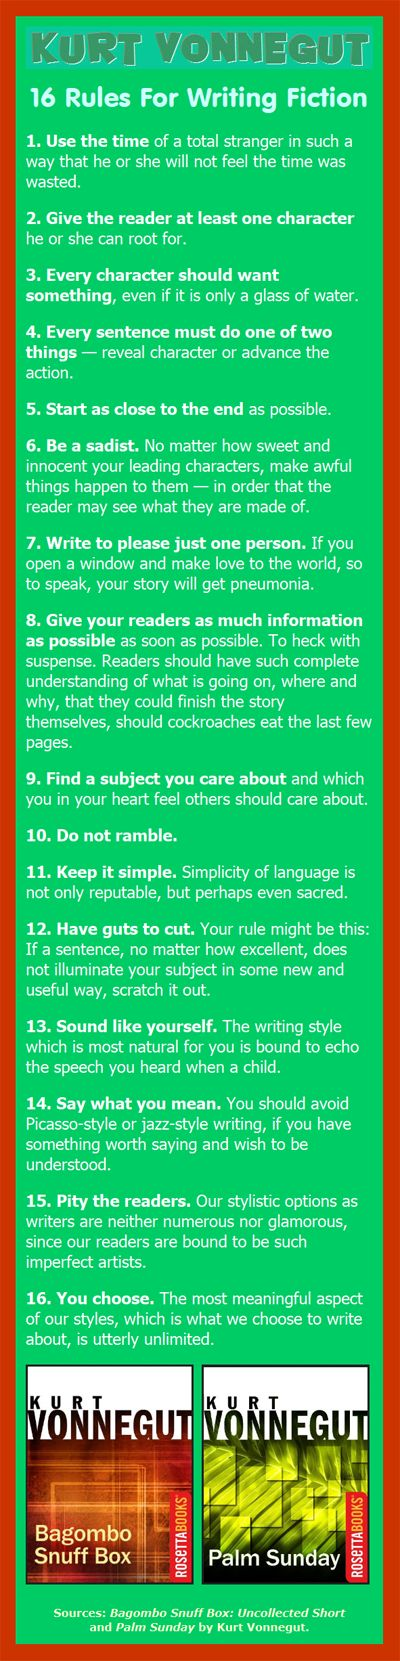 16 Rules of Writing Fiction